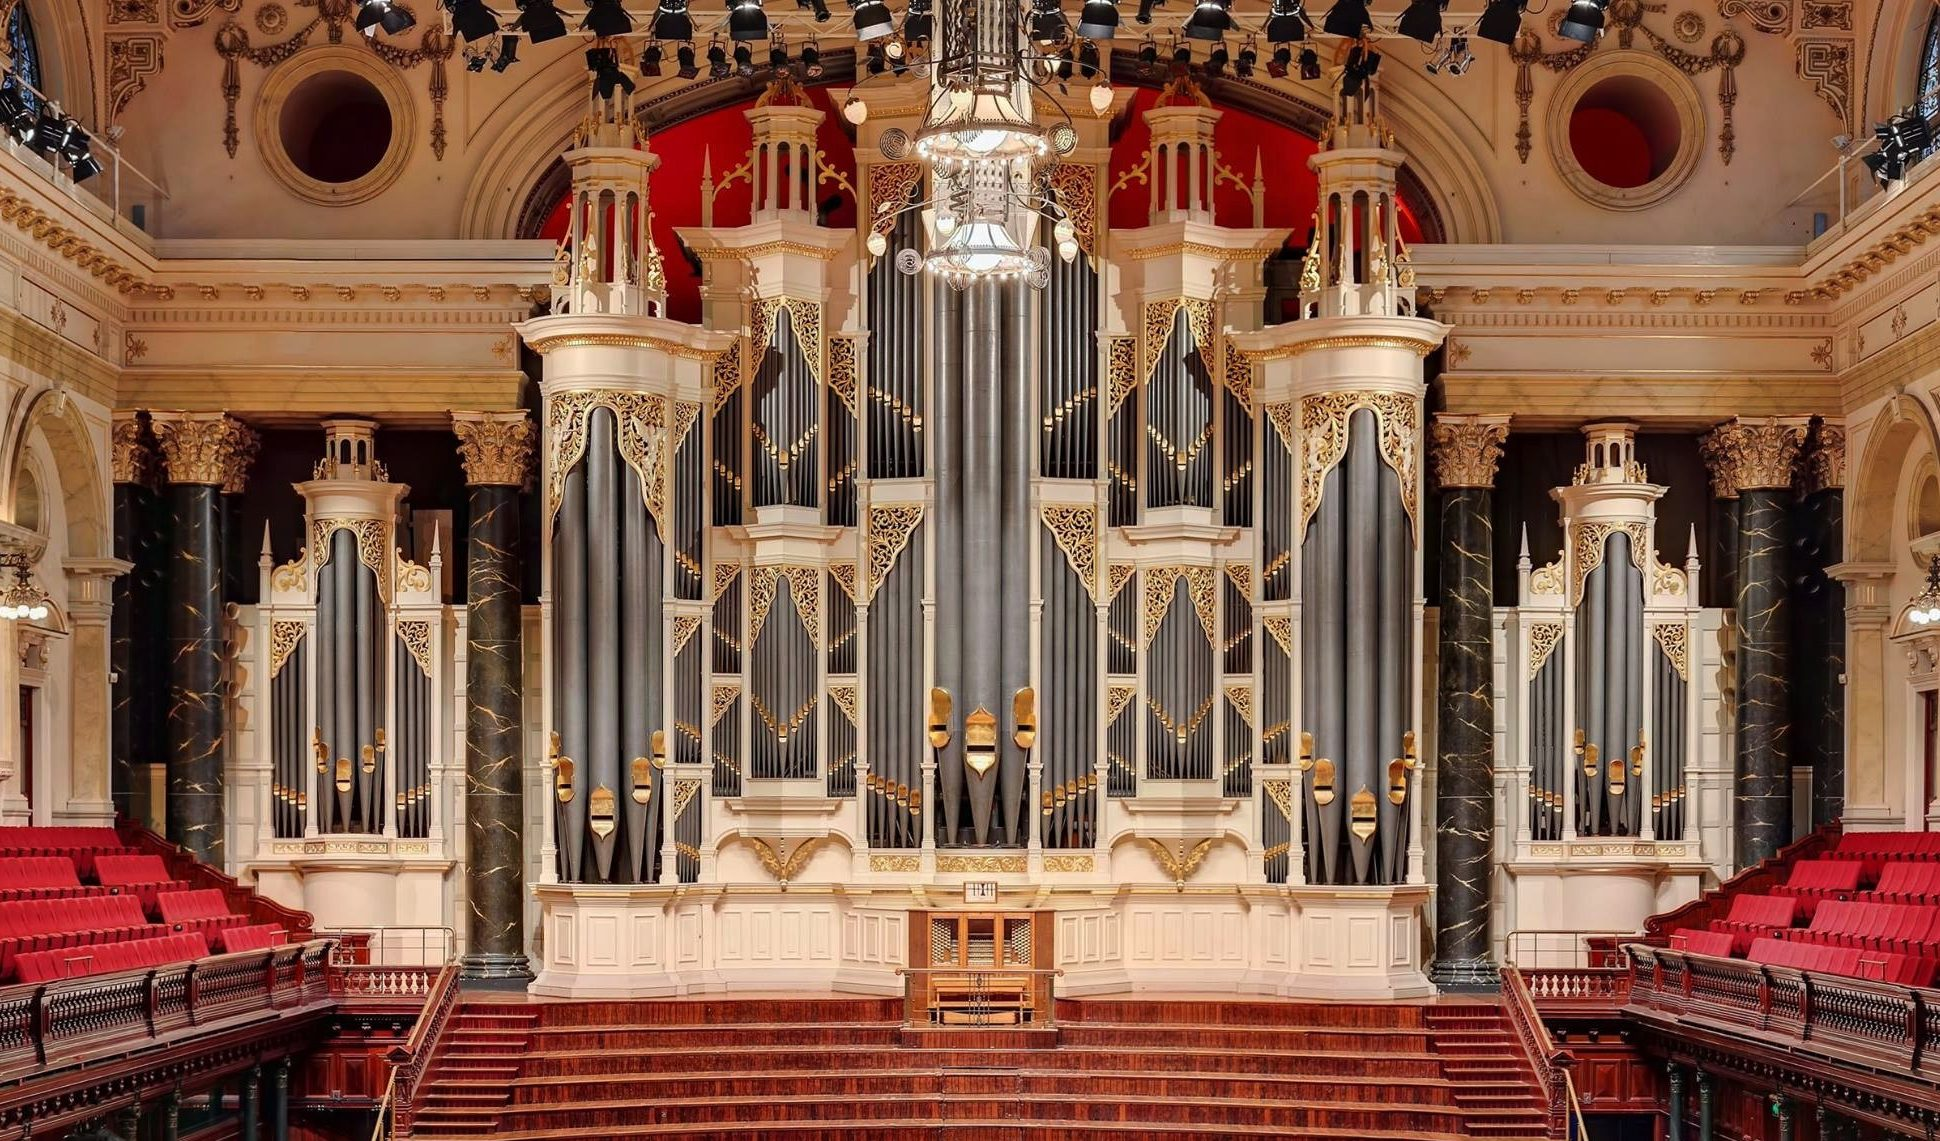 Organ historical trust of australia ccuart Image collections